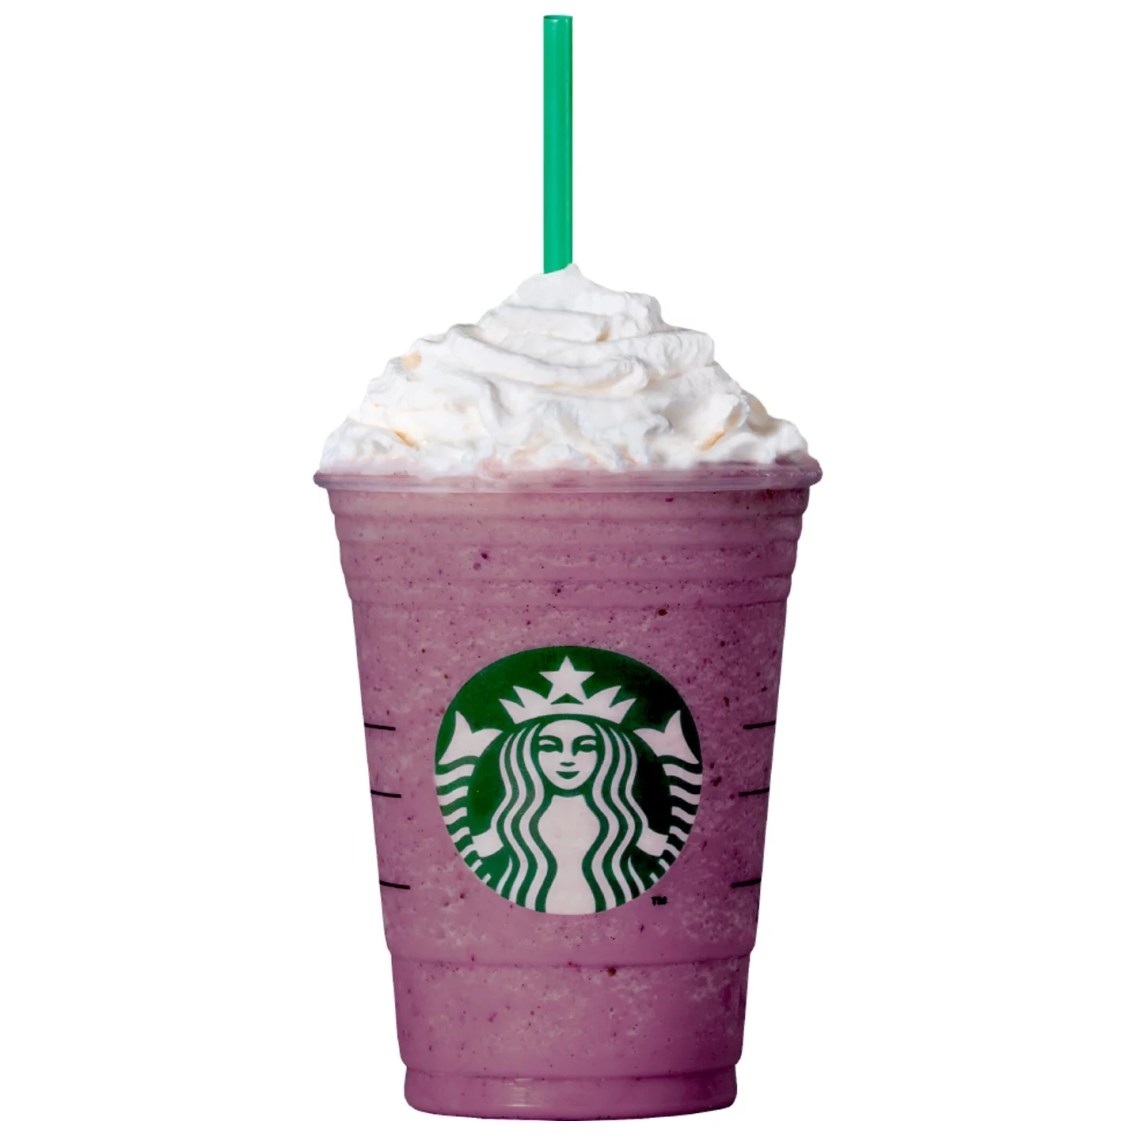 Image Result For How To Order Coffee At Starbucks With Cream And Sugar